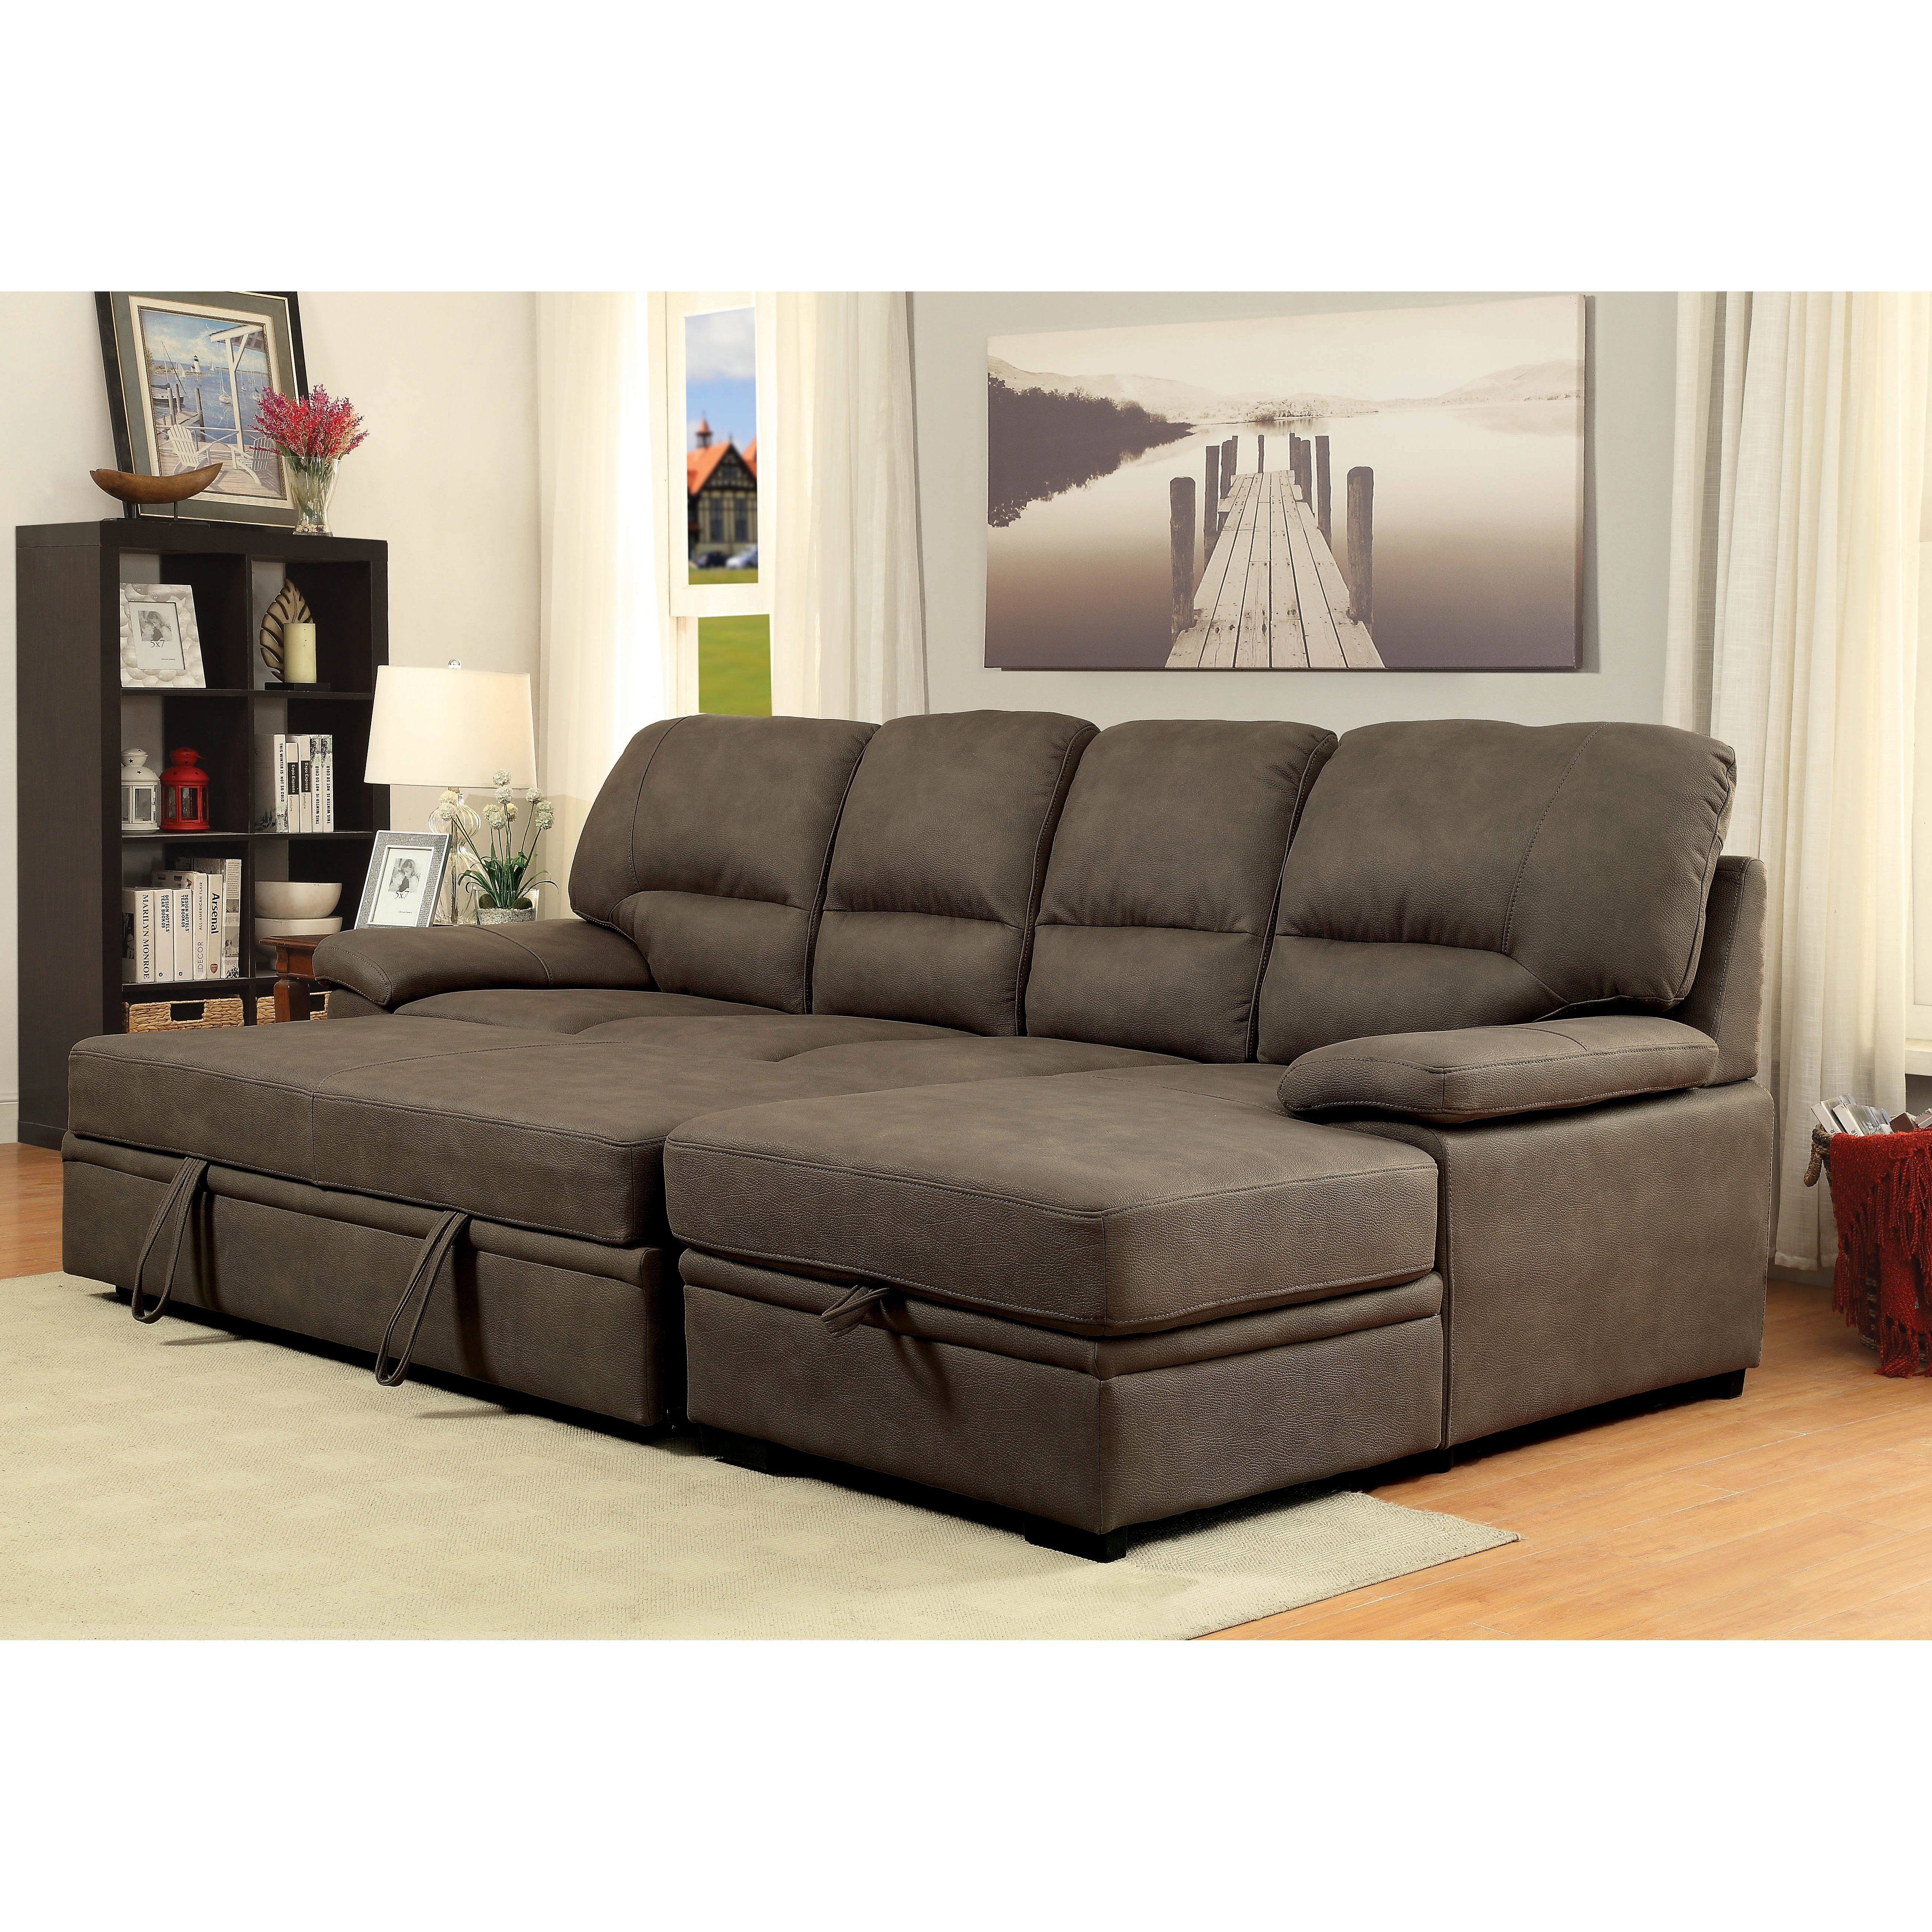 Sofa Bed Sectional | Aifaresidency Pertaining To Aspen 2 Piece Sleeper Sectionals With Laf Chaise (View 20 of 25)